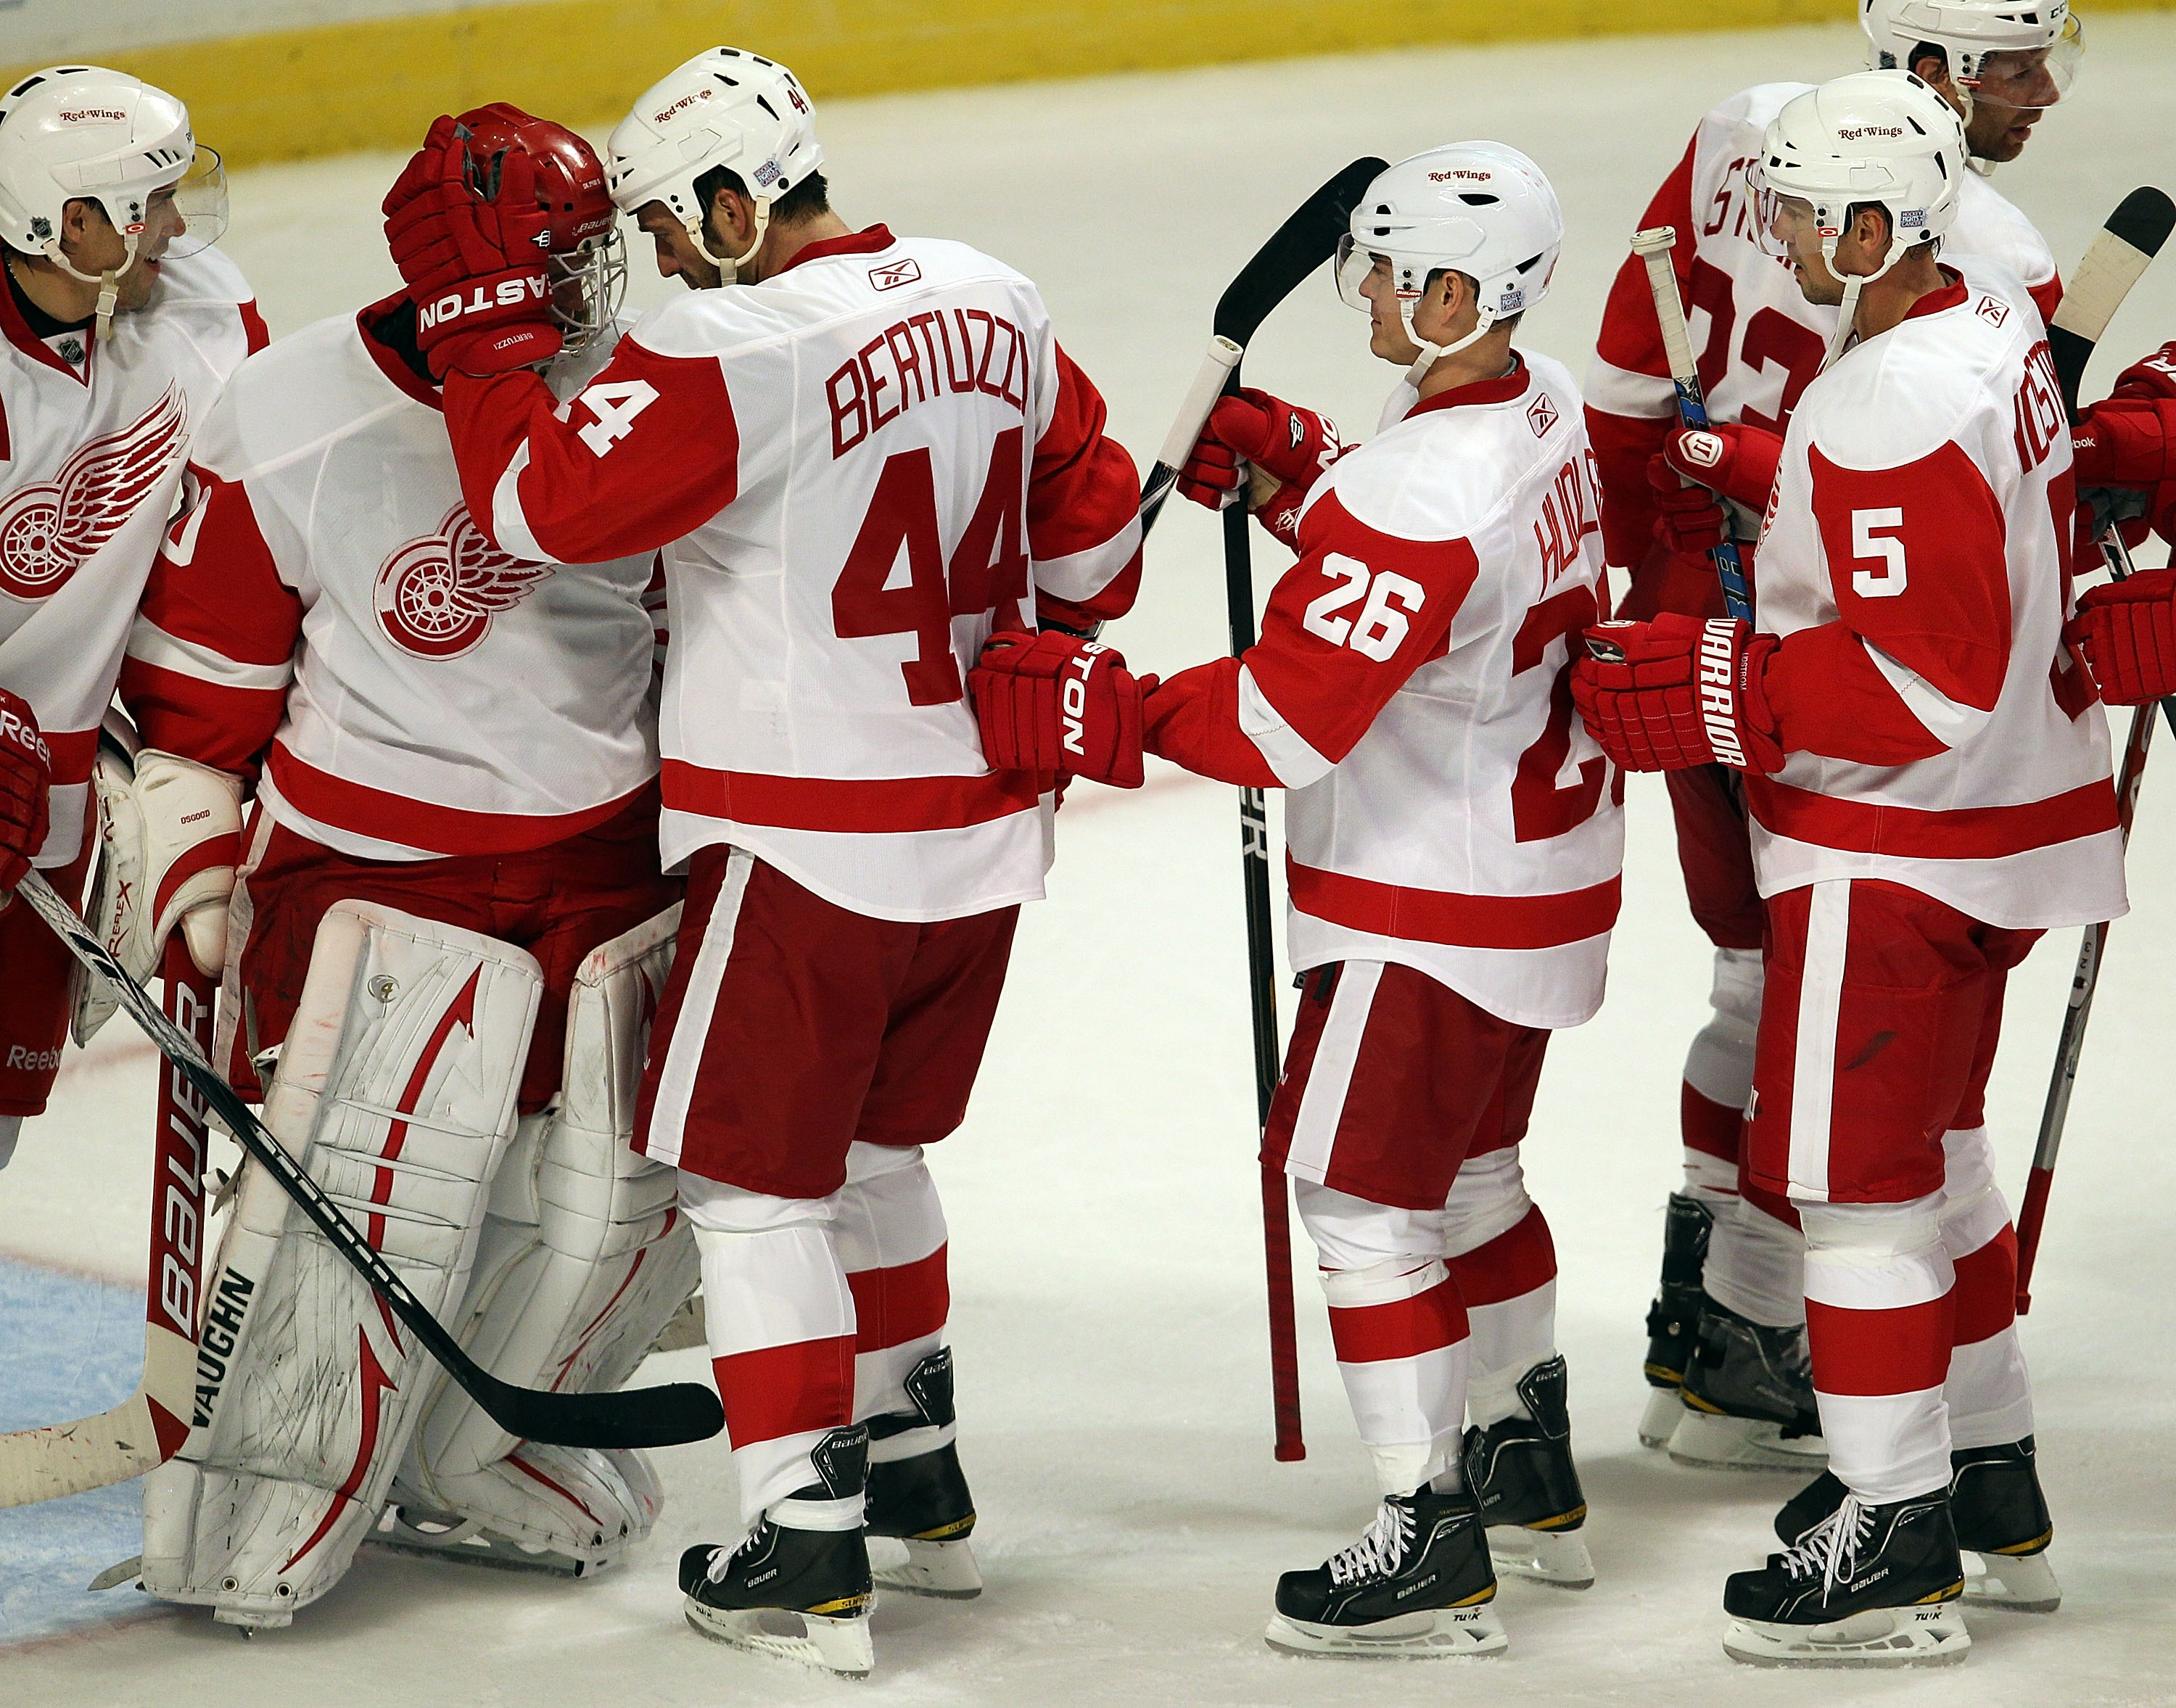 CHICAGO - OCTOBER 09: Chris Osgood #30 of the Detroit Red Wings is congratulated by teammates Todd Bertuzzi #44, Jiri Hudler #26 and Nicklas Lidstrom #5 after a win over the Chicago  Blackhawks at the United Center on October 9, 2010 in Chicago, Illinois.